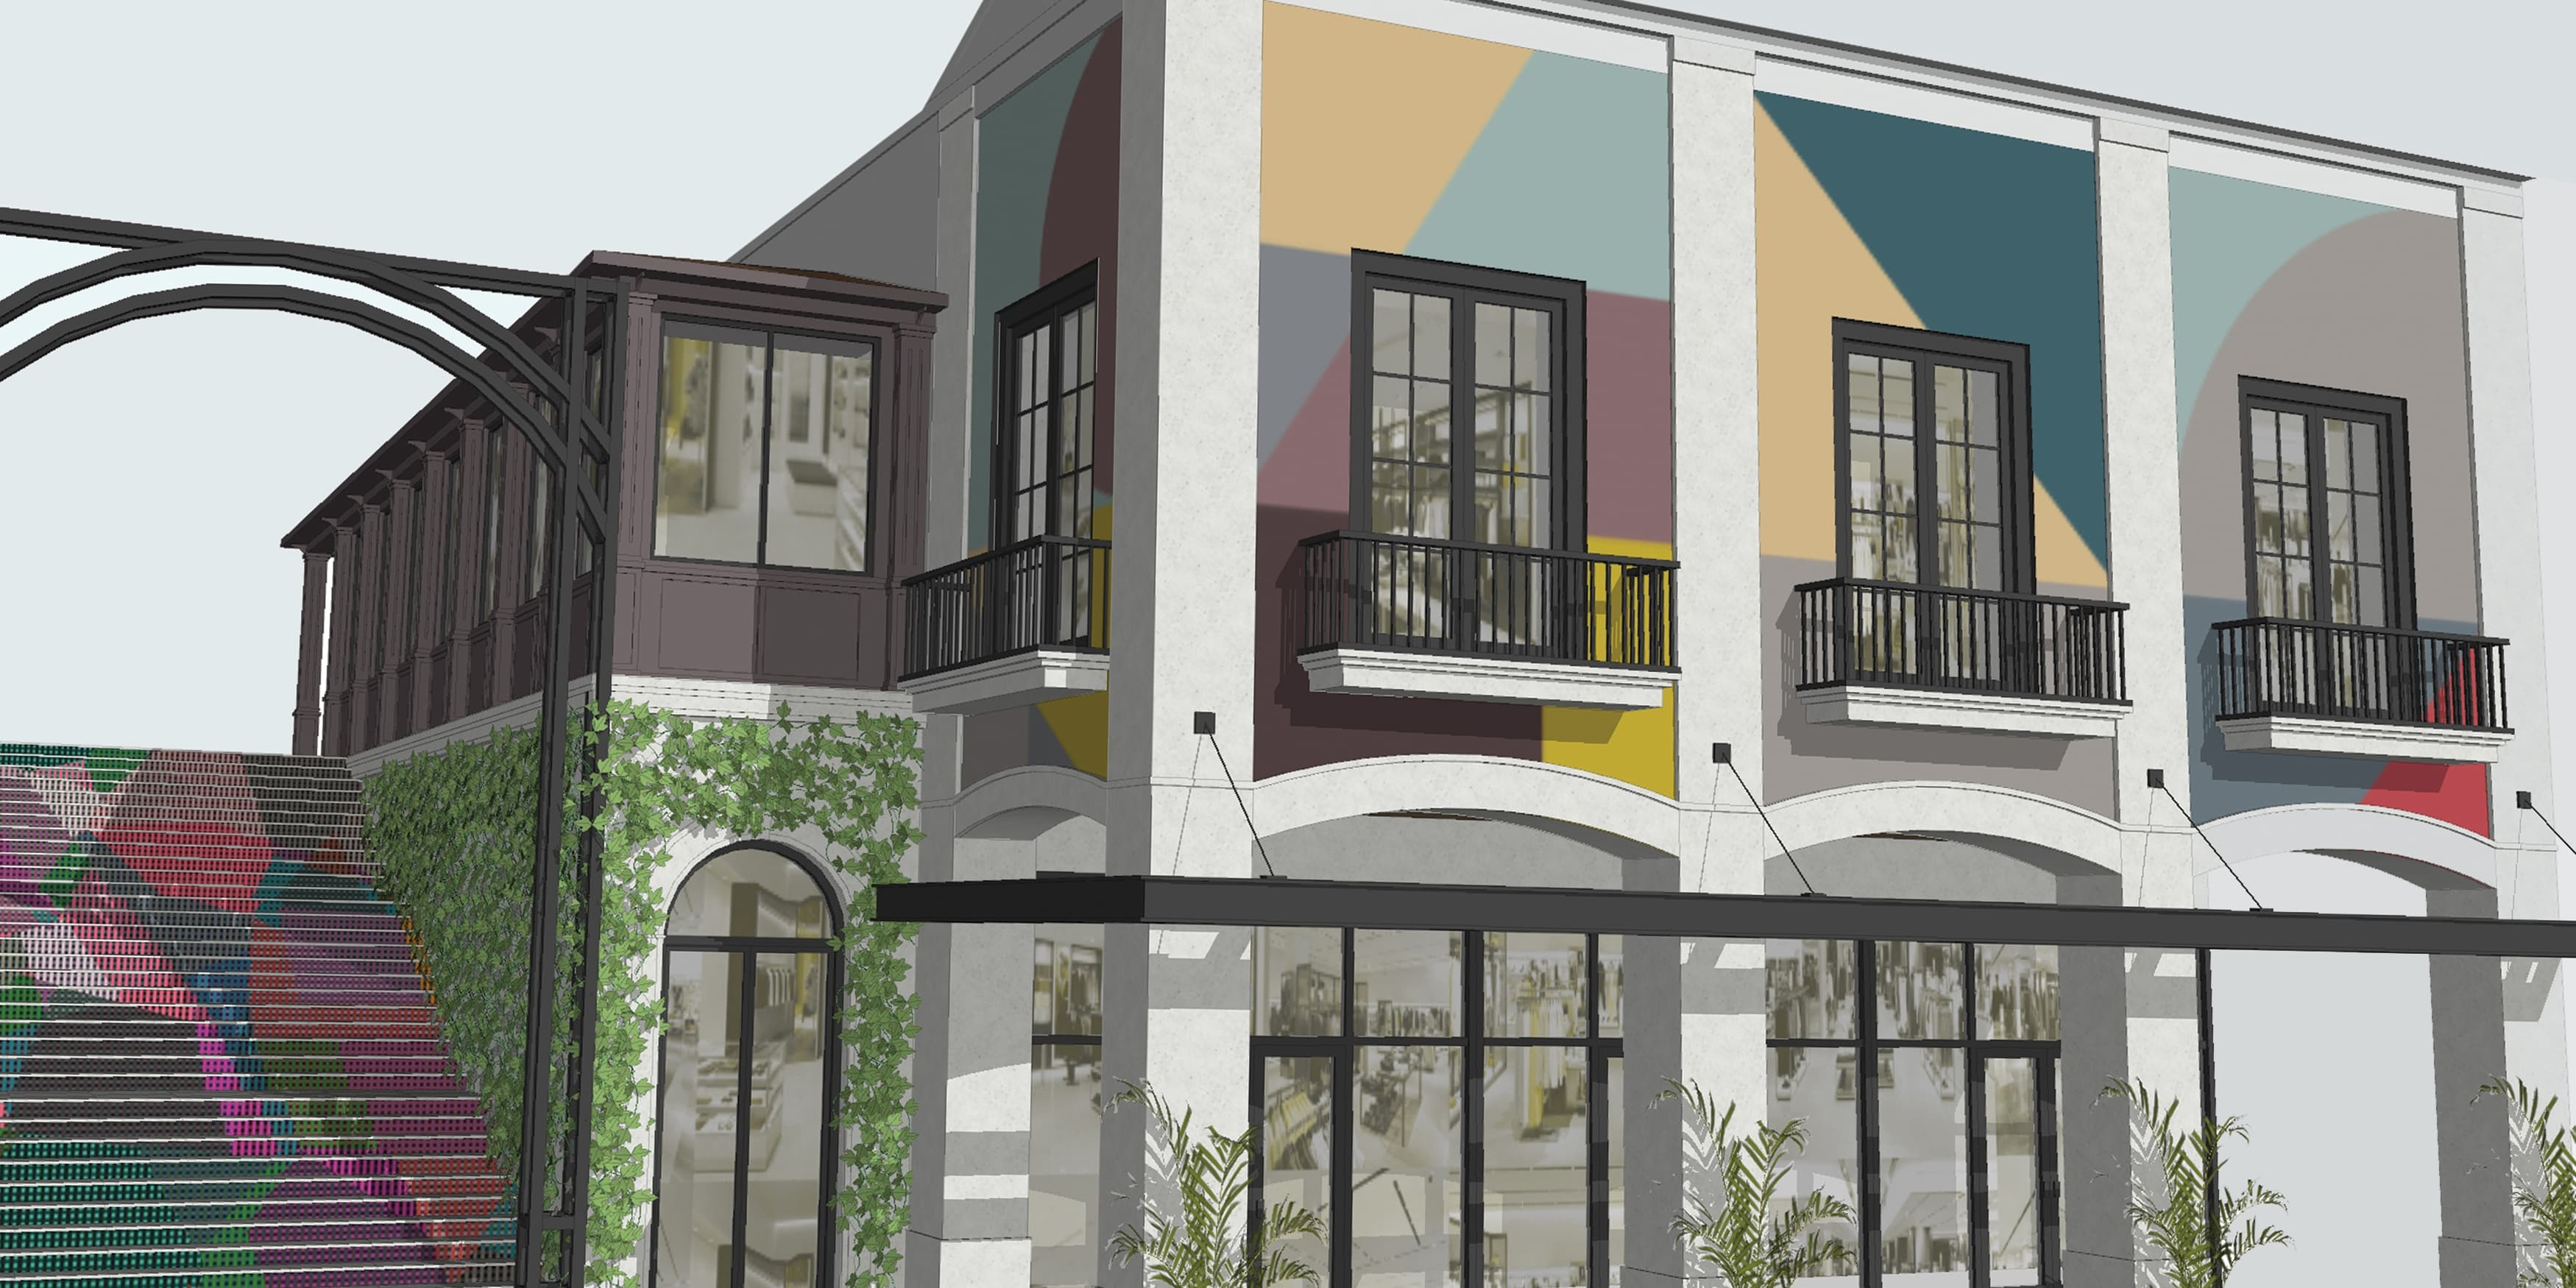 Rosemary Square, a  retail and entertainment center in West Palm Beach, Florida. RSM Design was brought in to create new facade designs, patterning, & mural designs. Architectural Graphic Design.